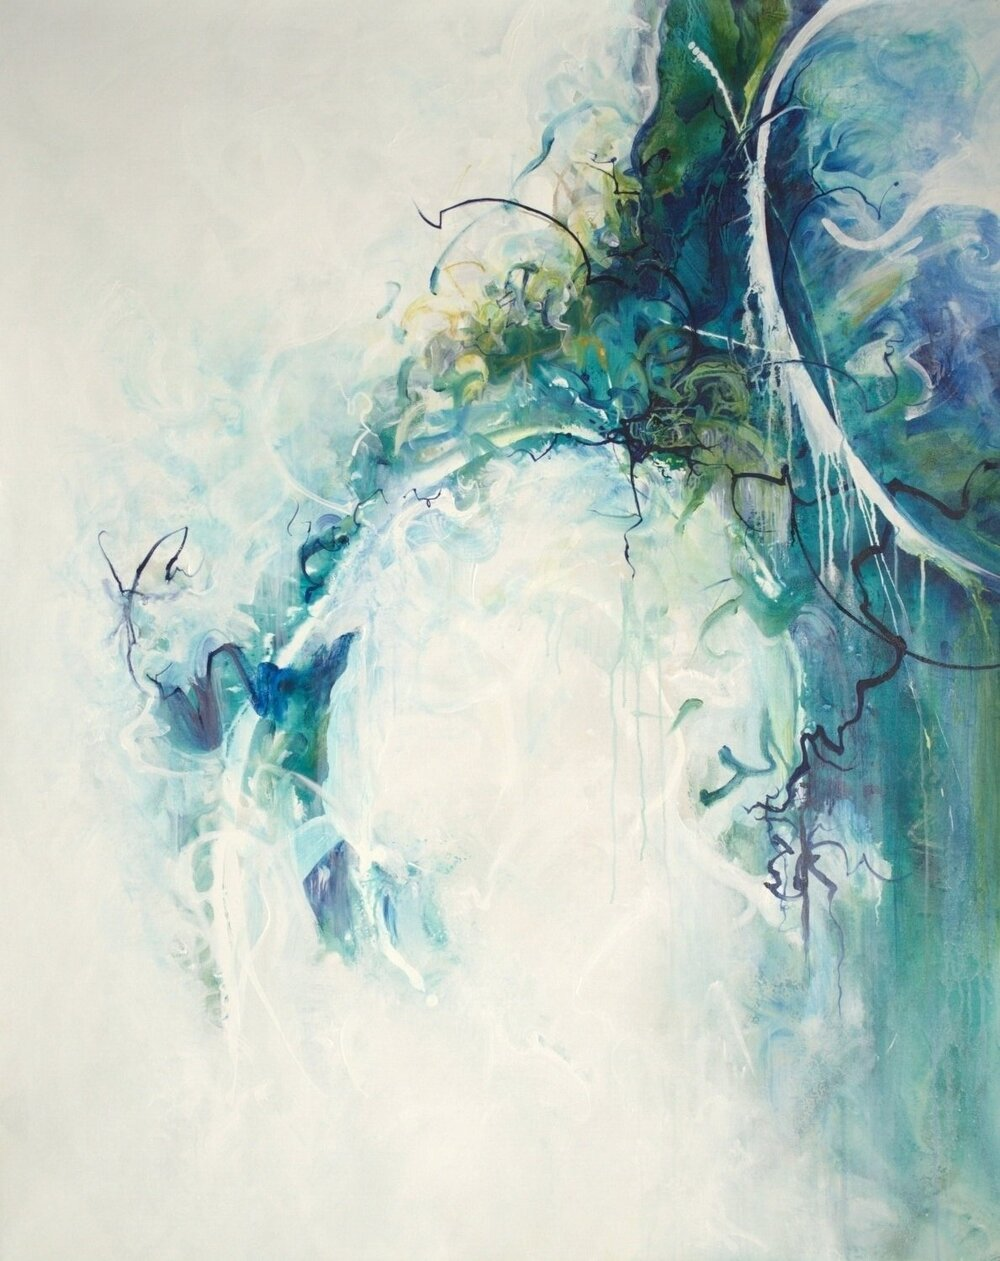 enchanted forest in blues - 56x44 - available